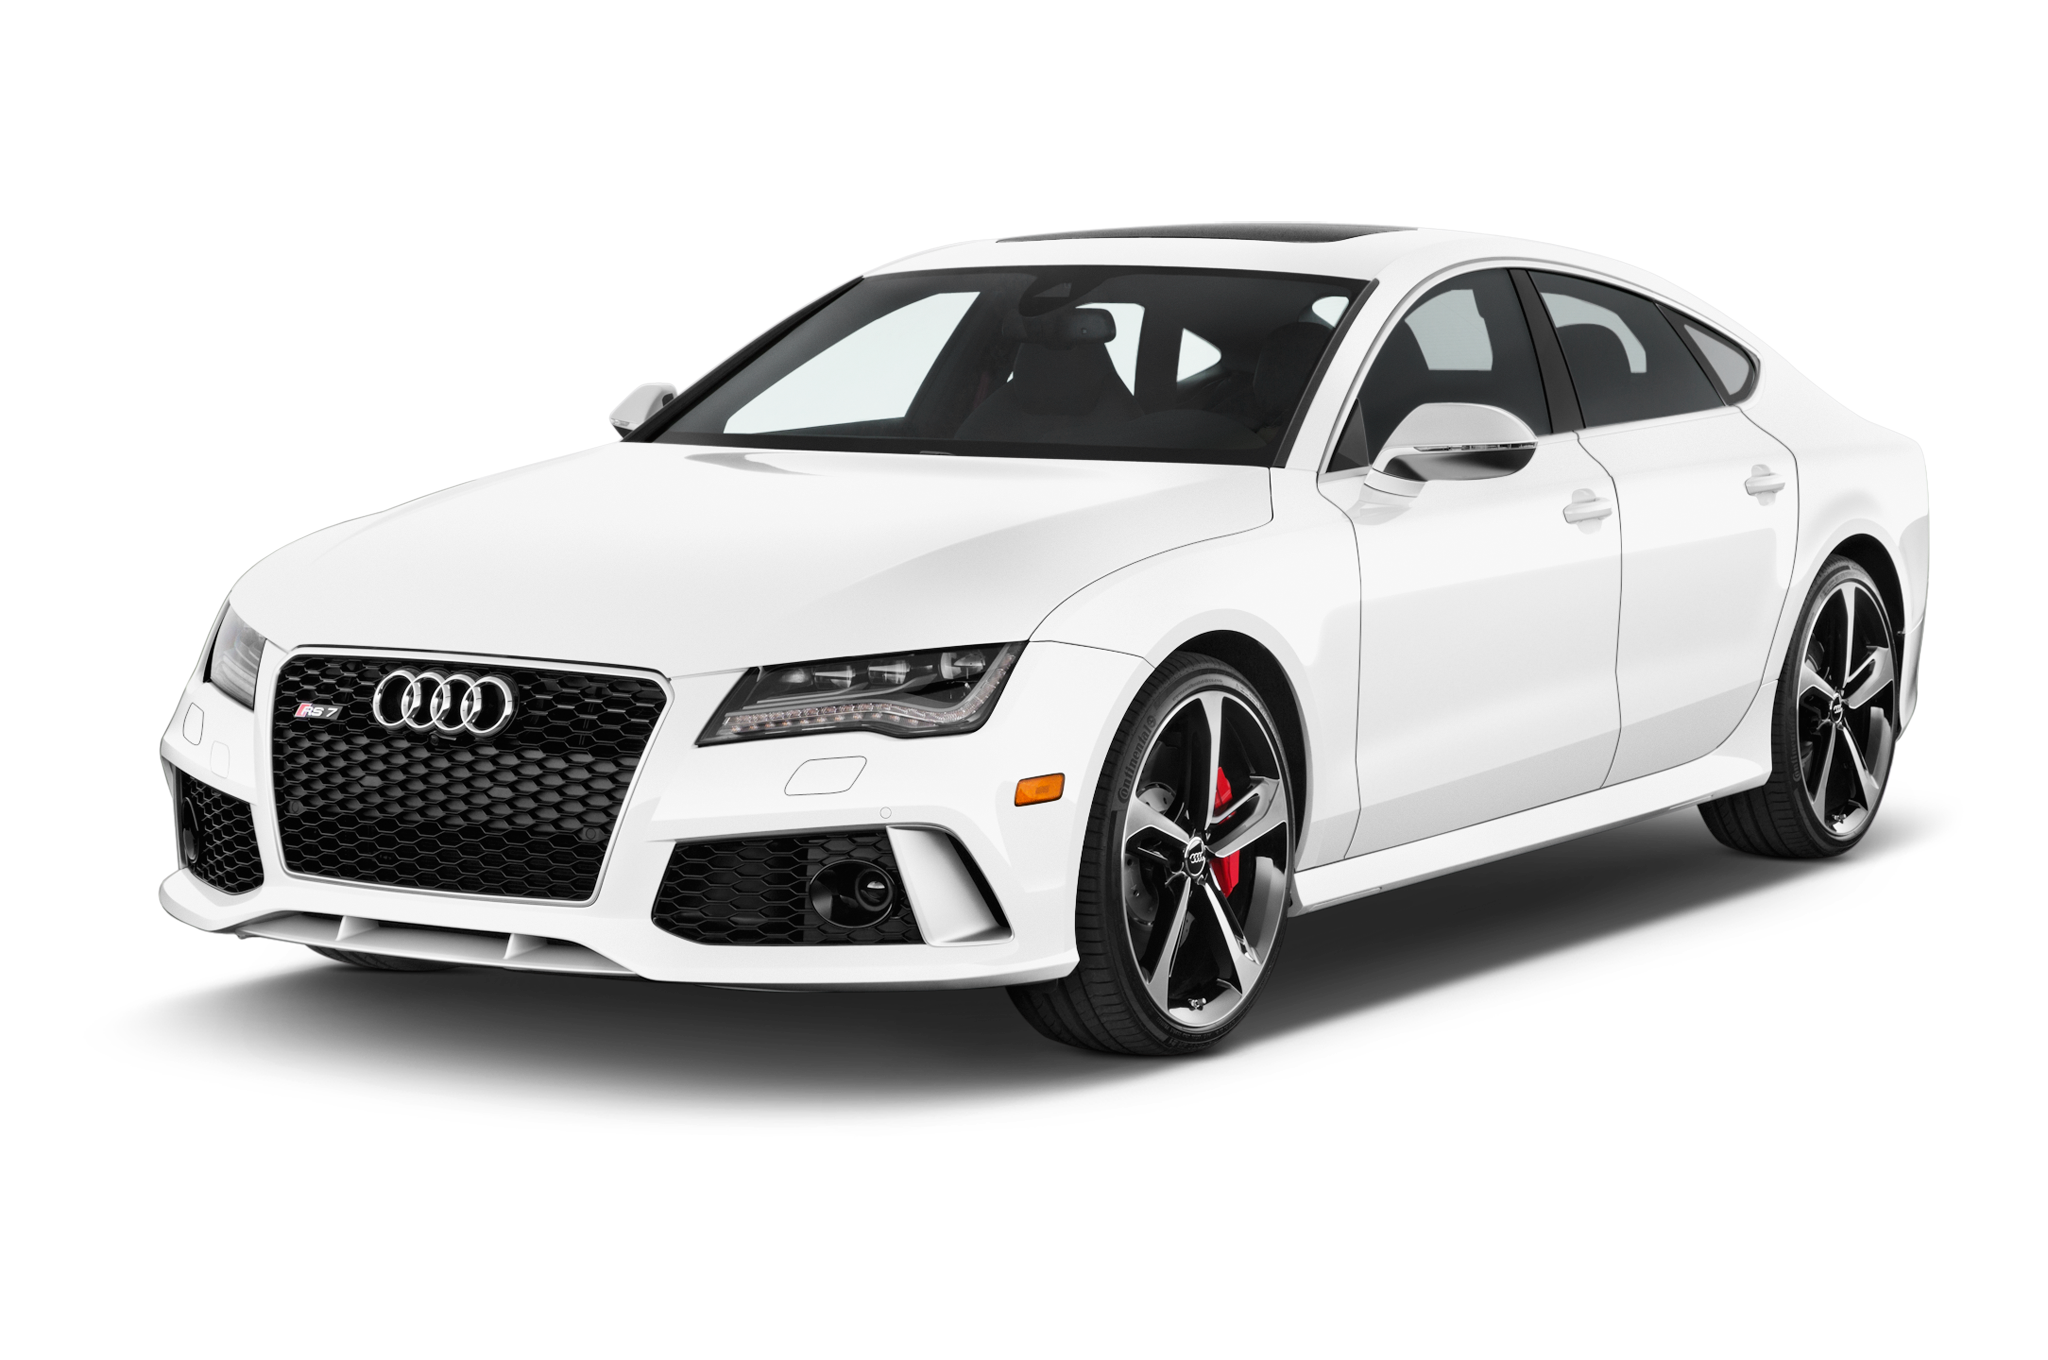 Why Do You Want An Audi Let Me Tell You - Audi car from